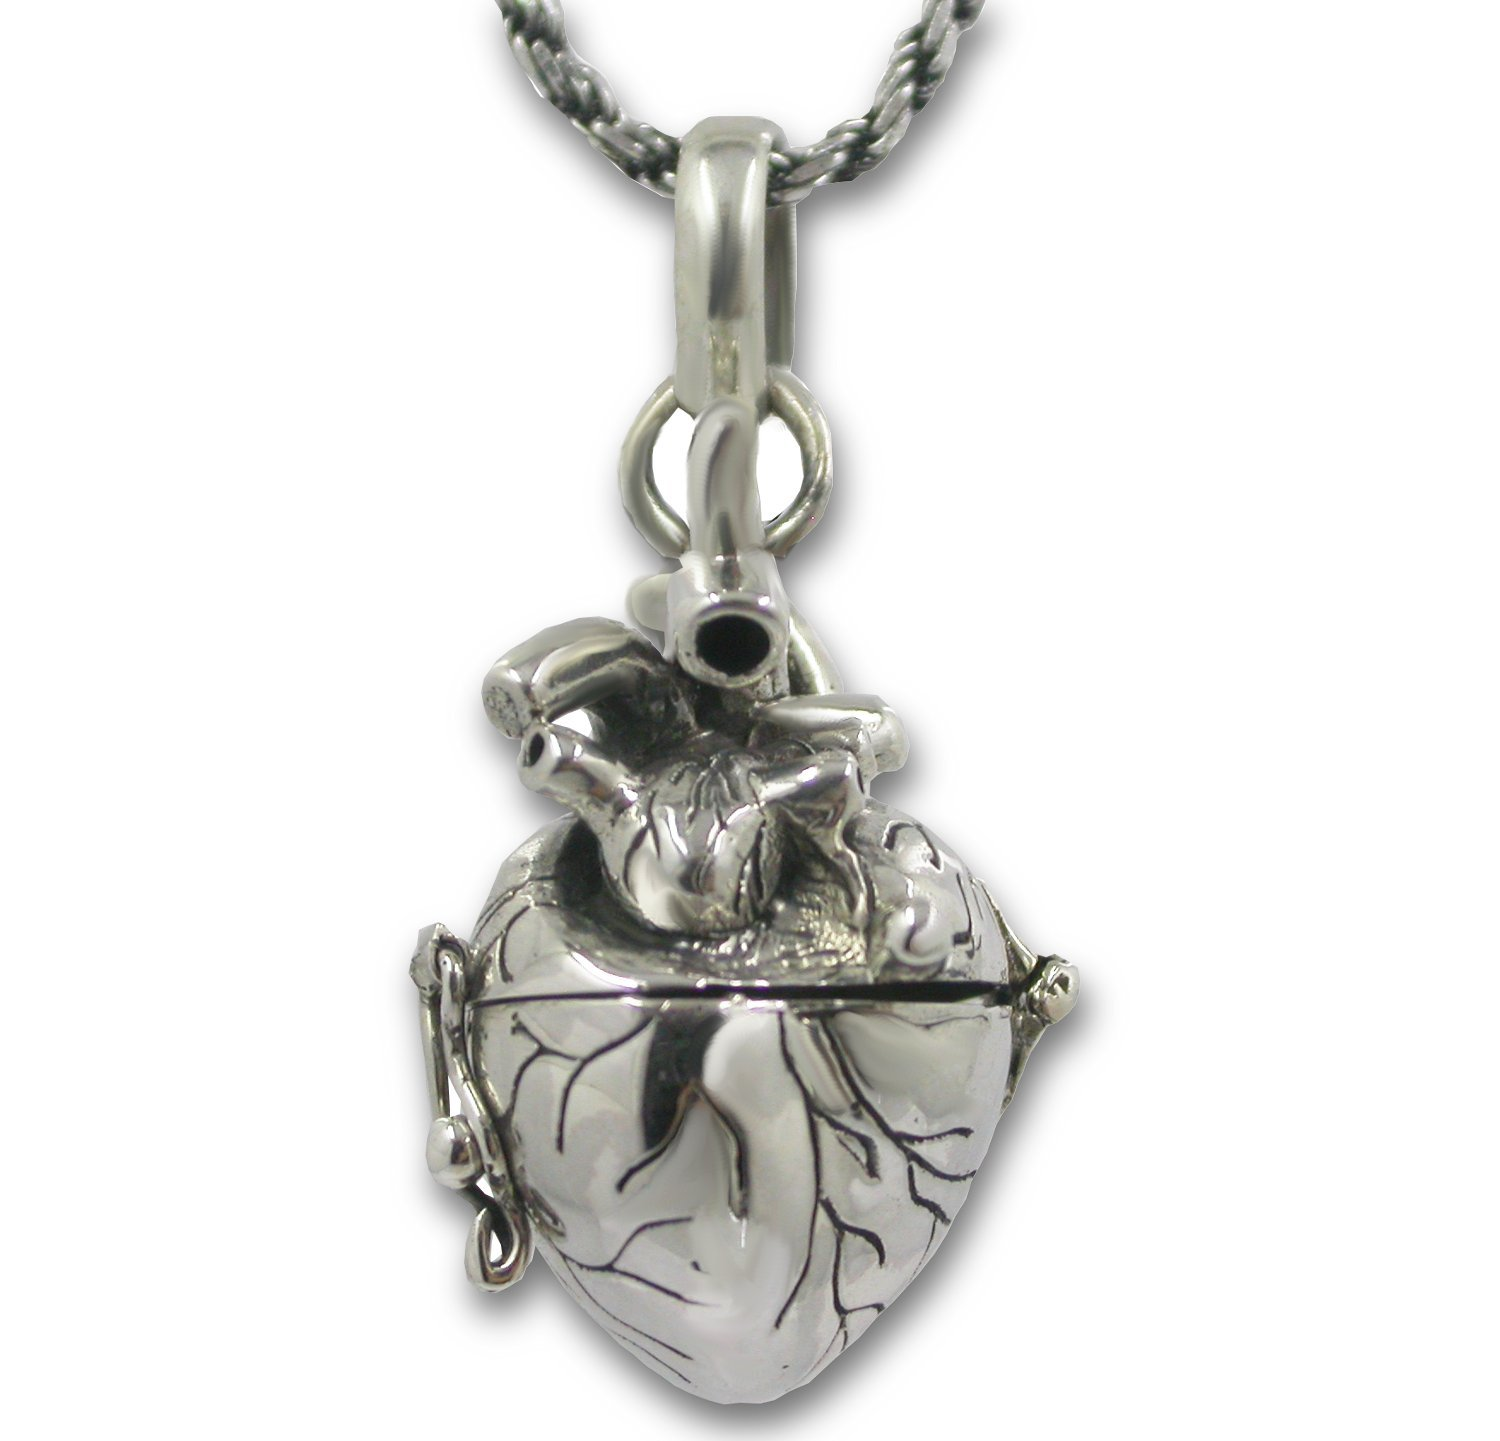 Anatomical Heart Necklace Solid Sterling Silver 3d Antique Finish Message Note Holder or Pill Box Pendant Locket Opens (Heart with 20'' Sterling Silver Rope Chain)